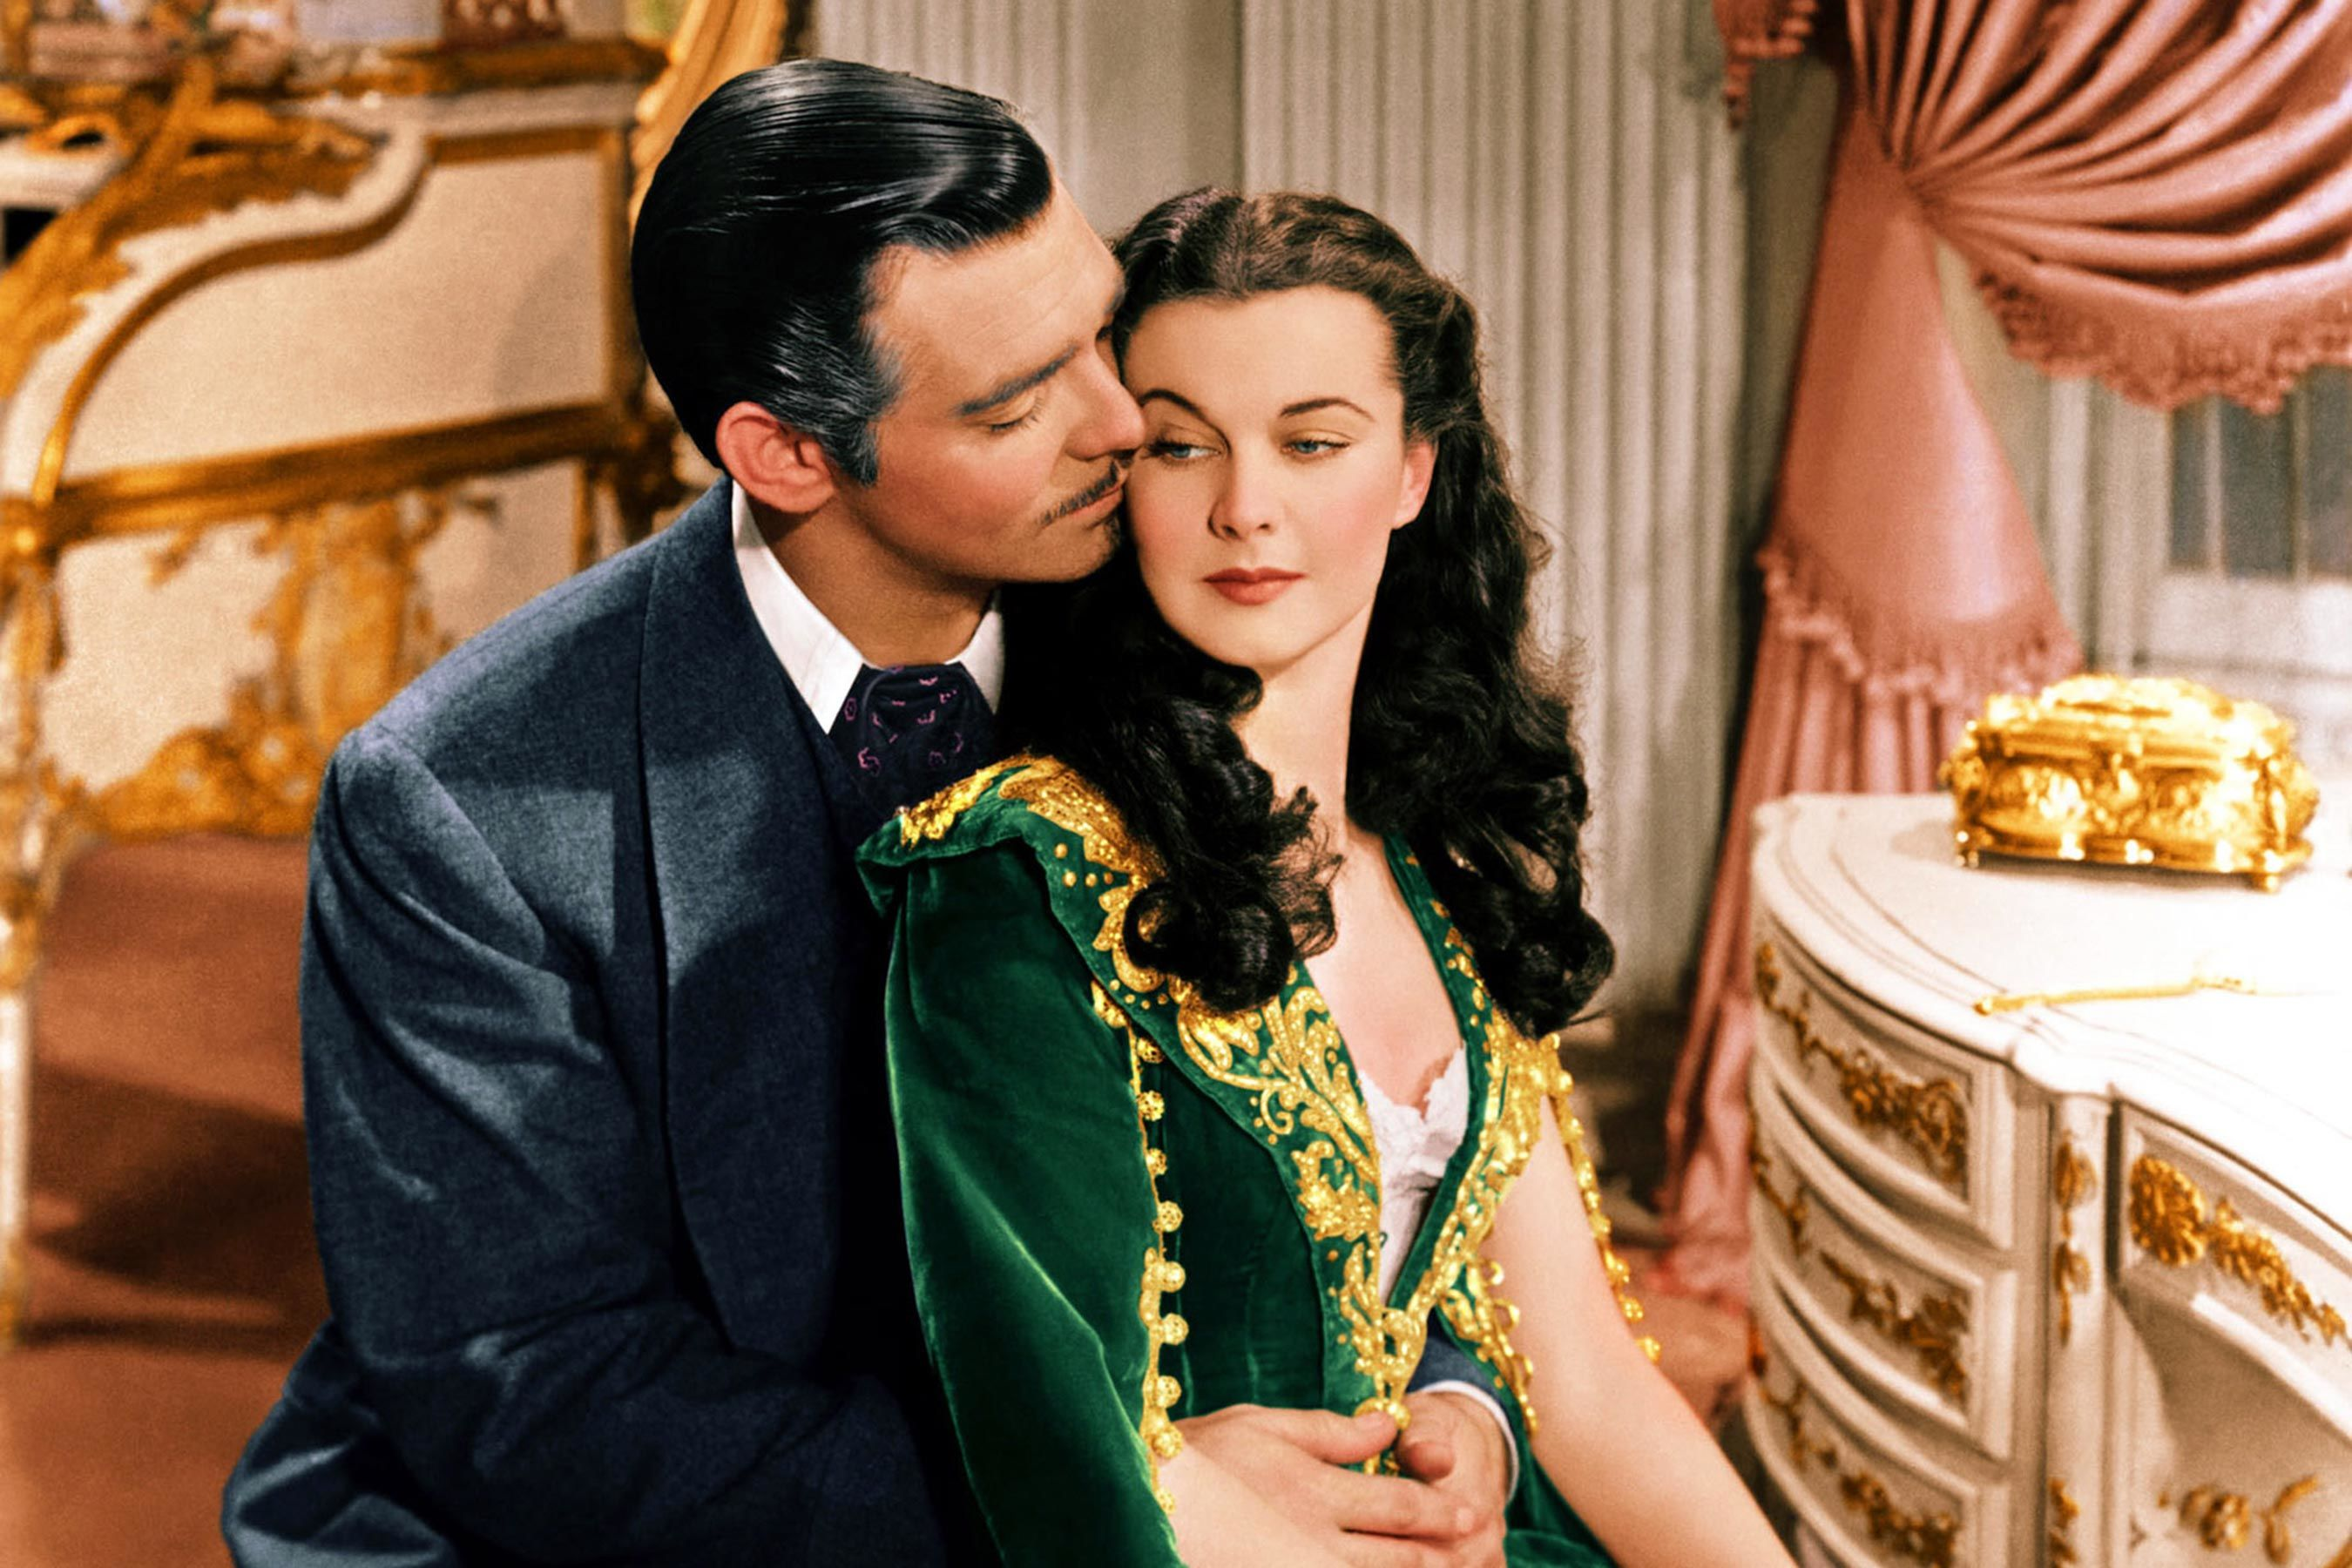 Gone With the Wind Returning to Theaters for 80th Anniversary